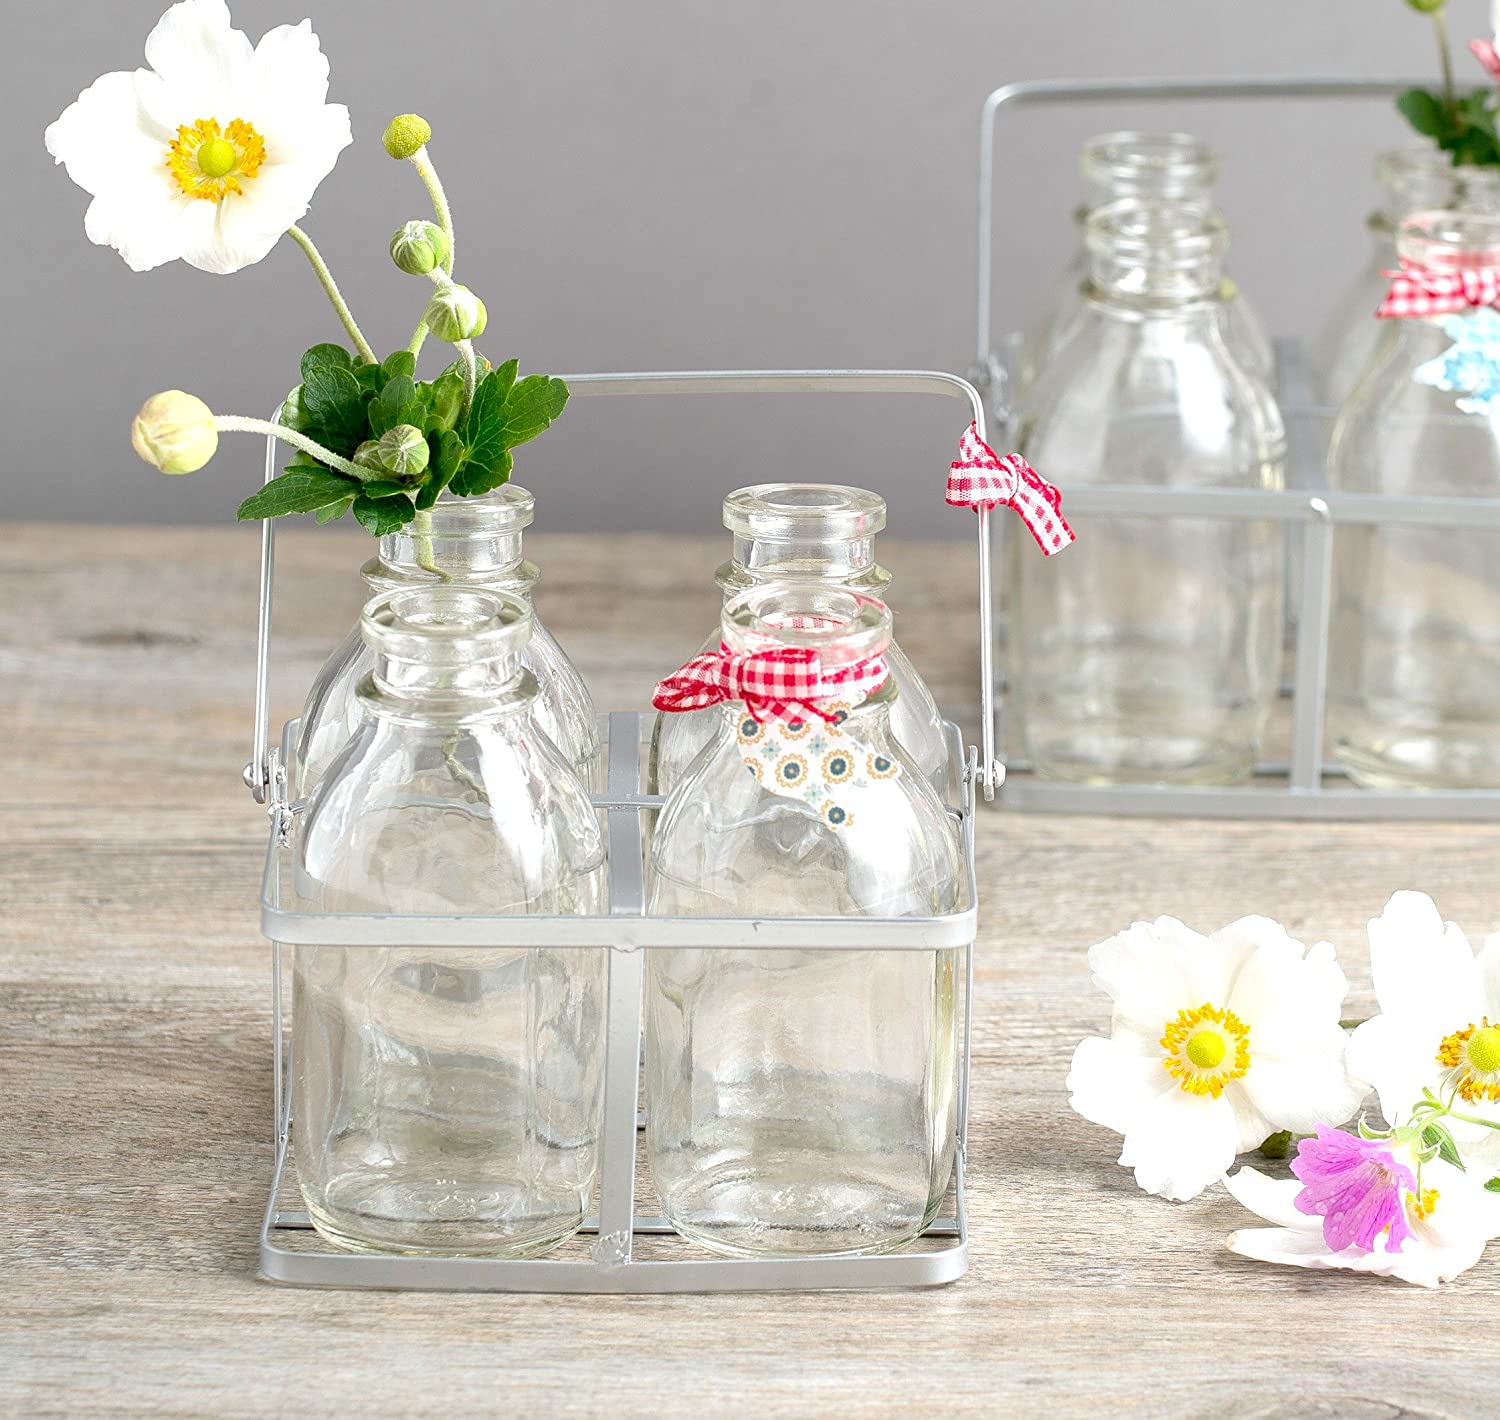 Set of 4 mini milk bottles vases in a vintage style metal crate set of 4 mini milk bottles vases in a vintage style metal crate for home treat weddings amazon kitchen home reviewsmspy